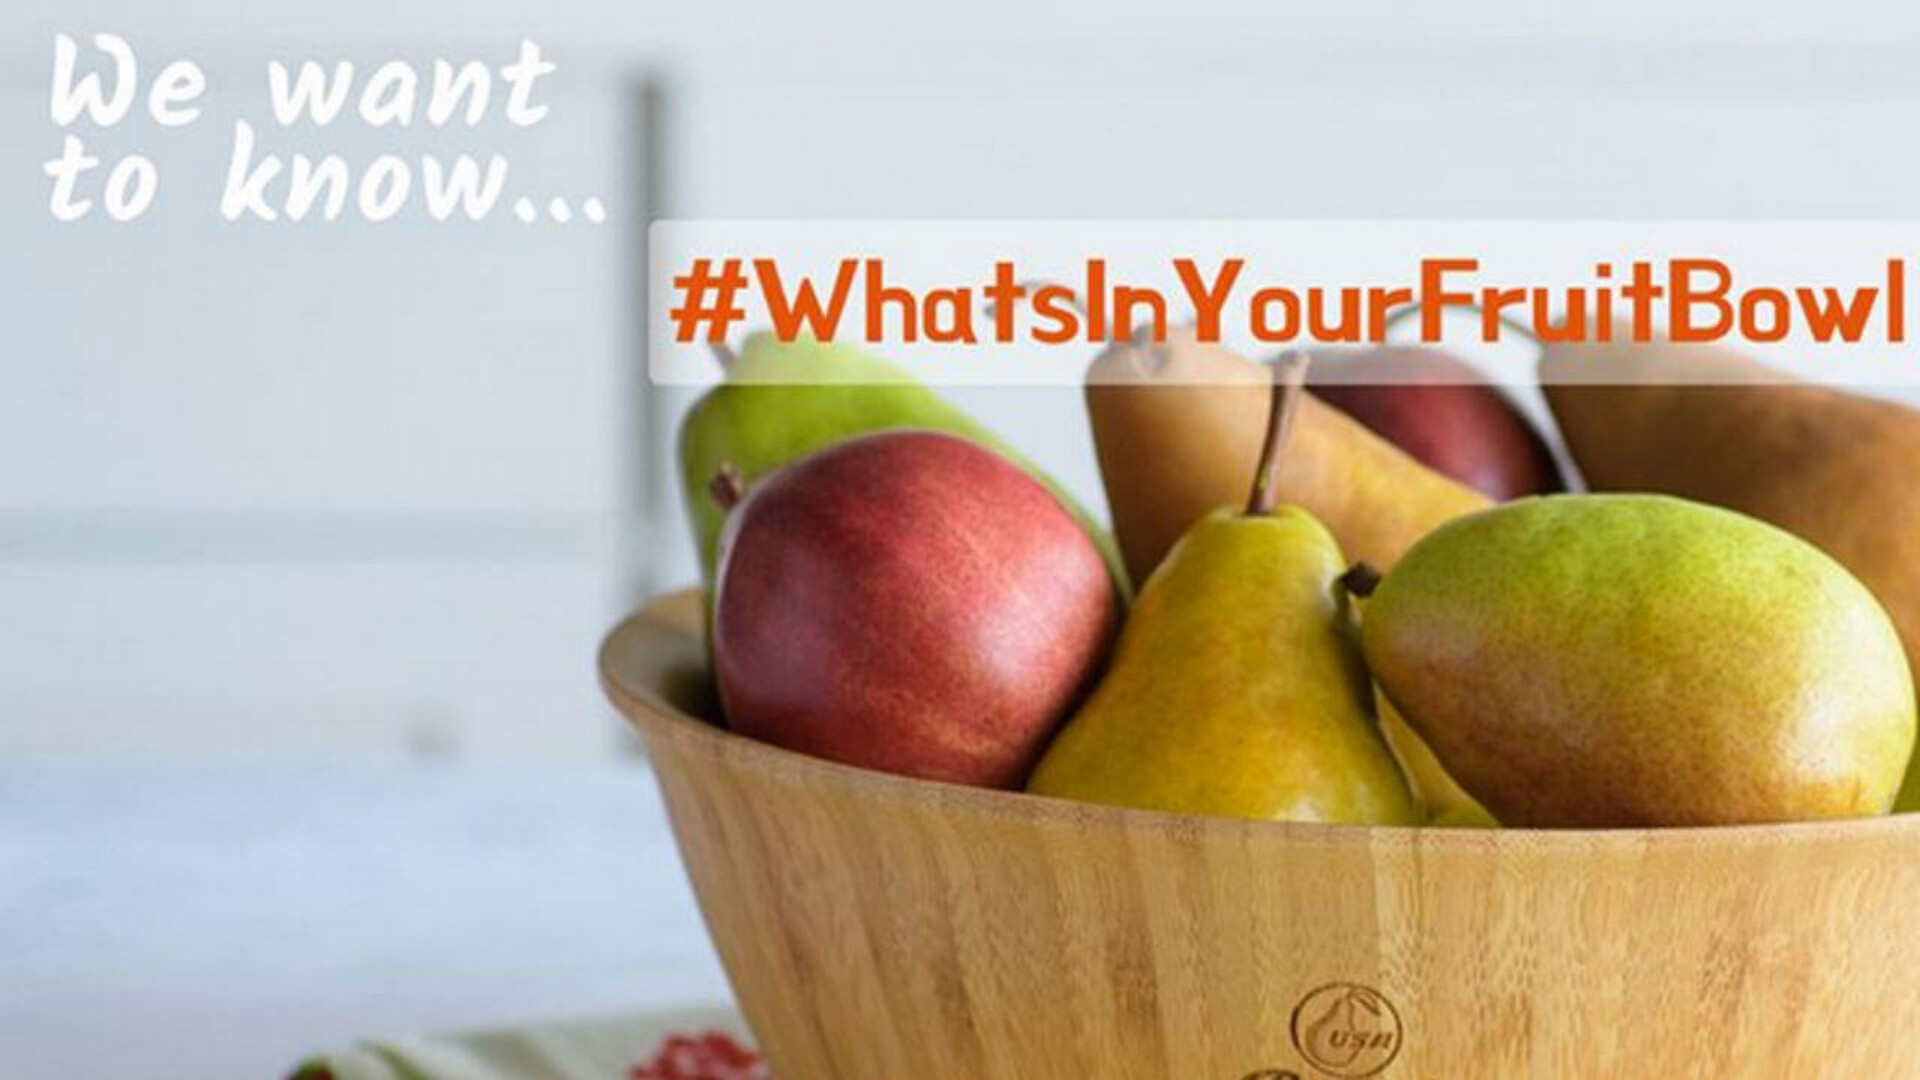 What's In Your Fruit Bowl Sweepstakes Pt 2